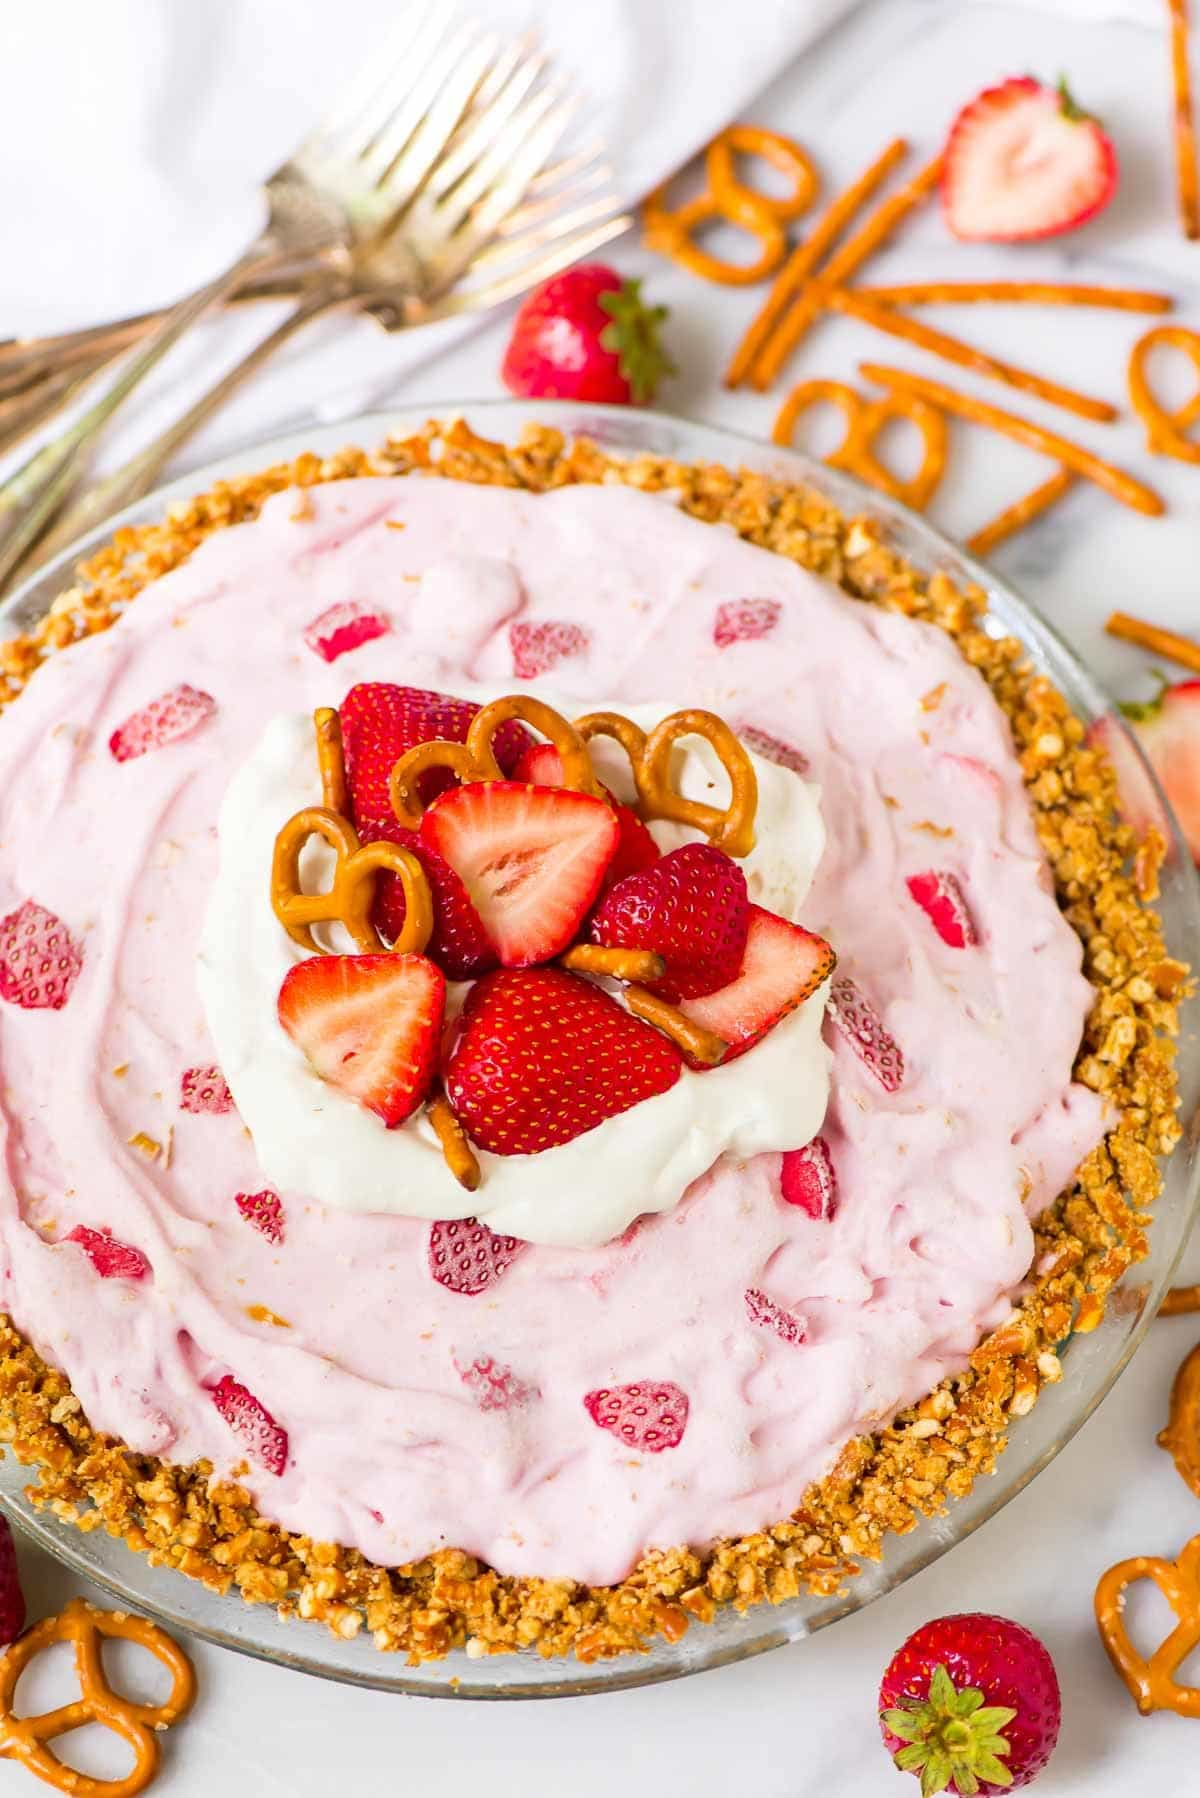 FIVE INGREDIENT Strawberry Ice Cream Pie with buttery pretzel crust. If you like strawberry pretzel salad, you will FLIP for this simple frozen summer dessert. Recipe at wellplated.com | @wellplated